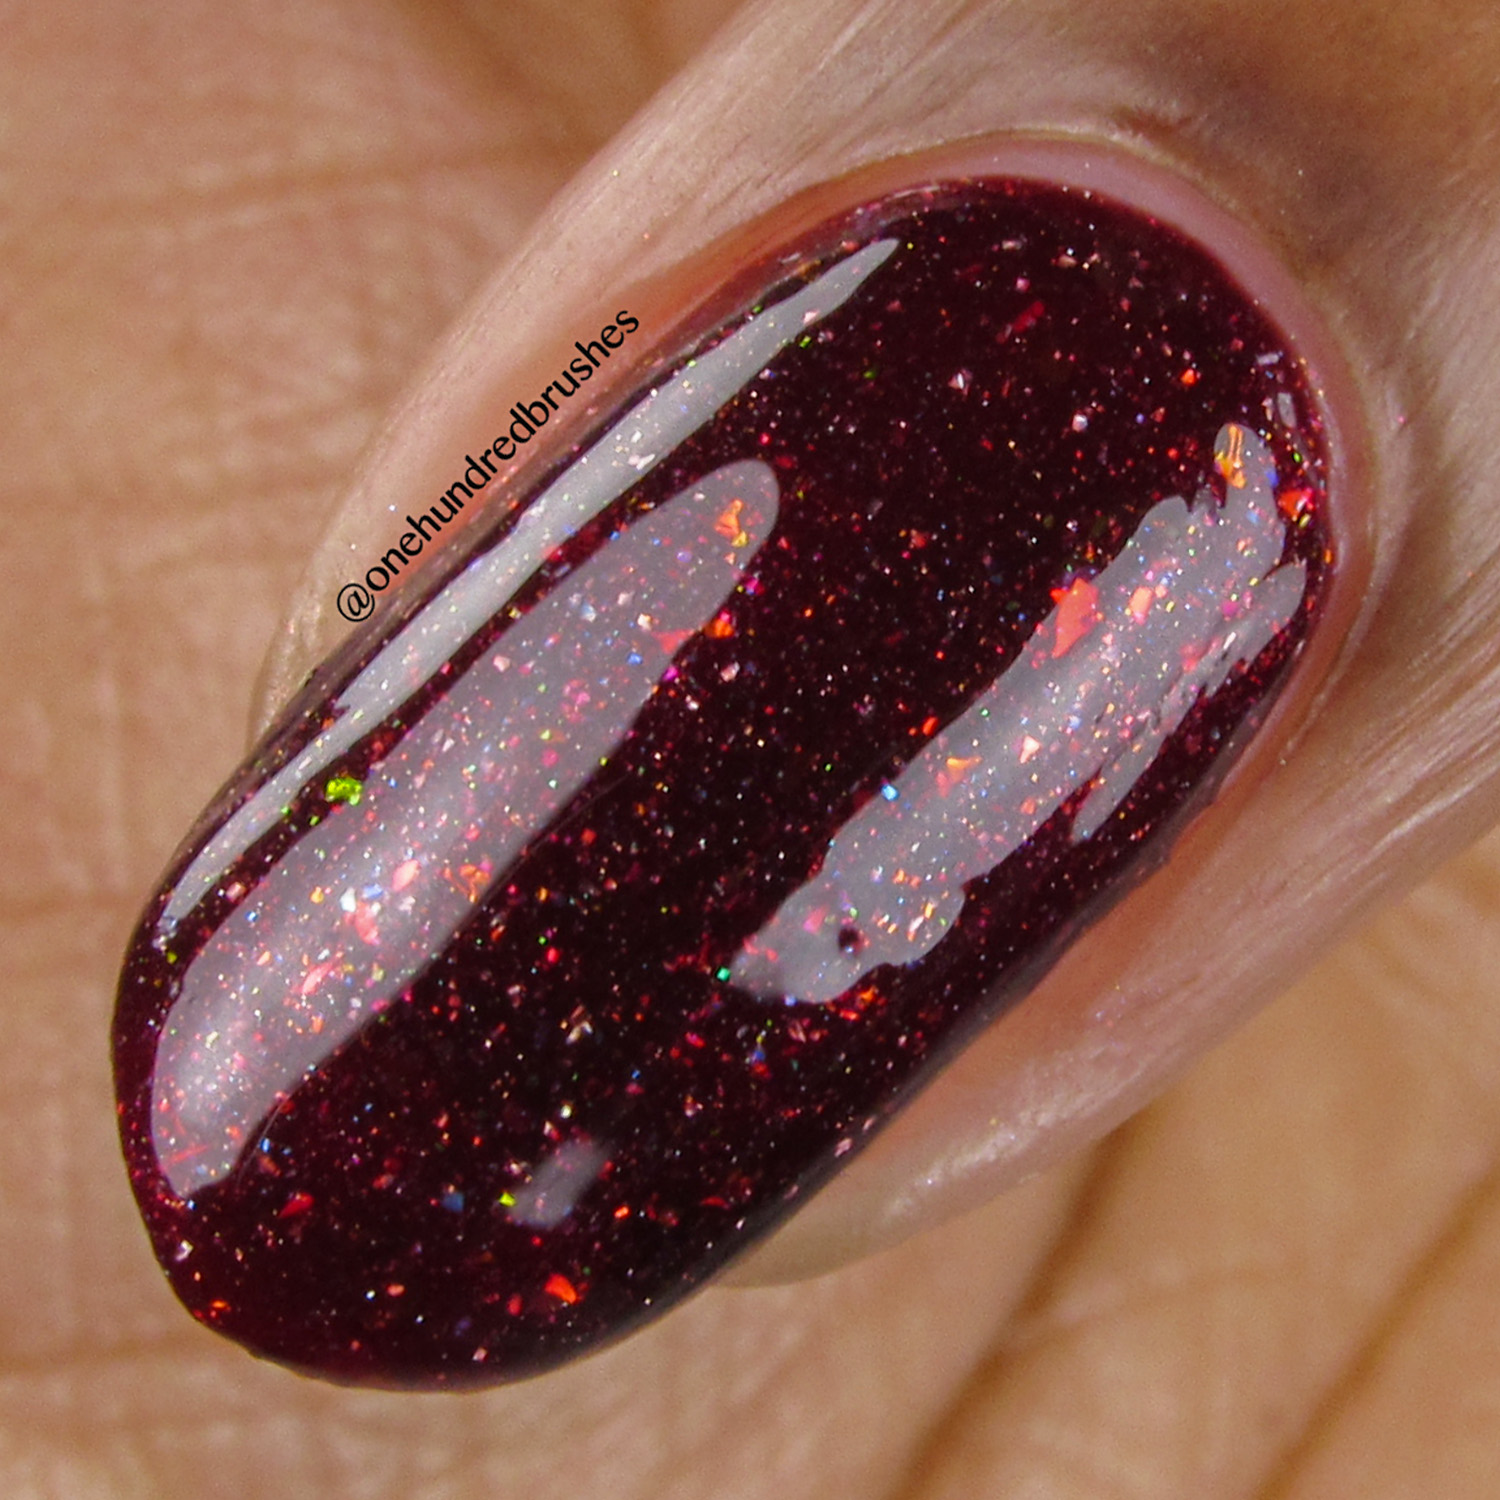 Punk Rock! Let's Go - macro - B Polished - Polish Pickup - May 2018 90's Pop Culture - The Craft